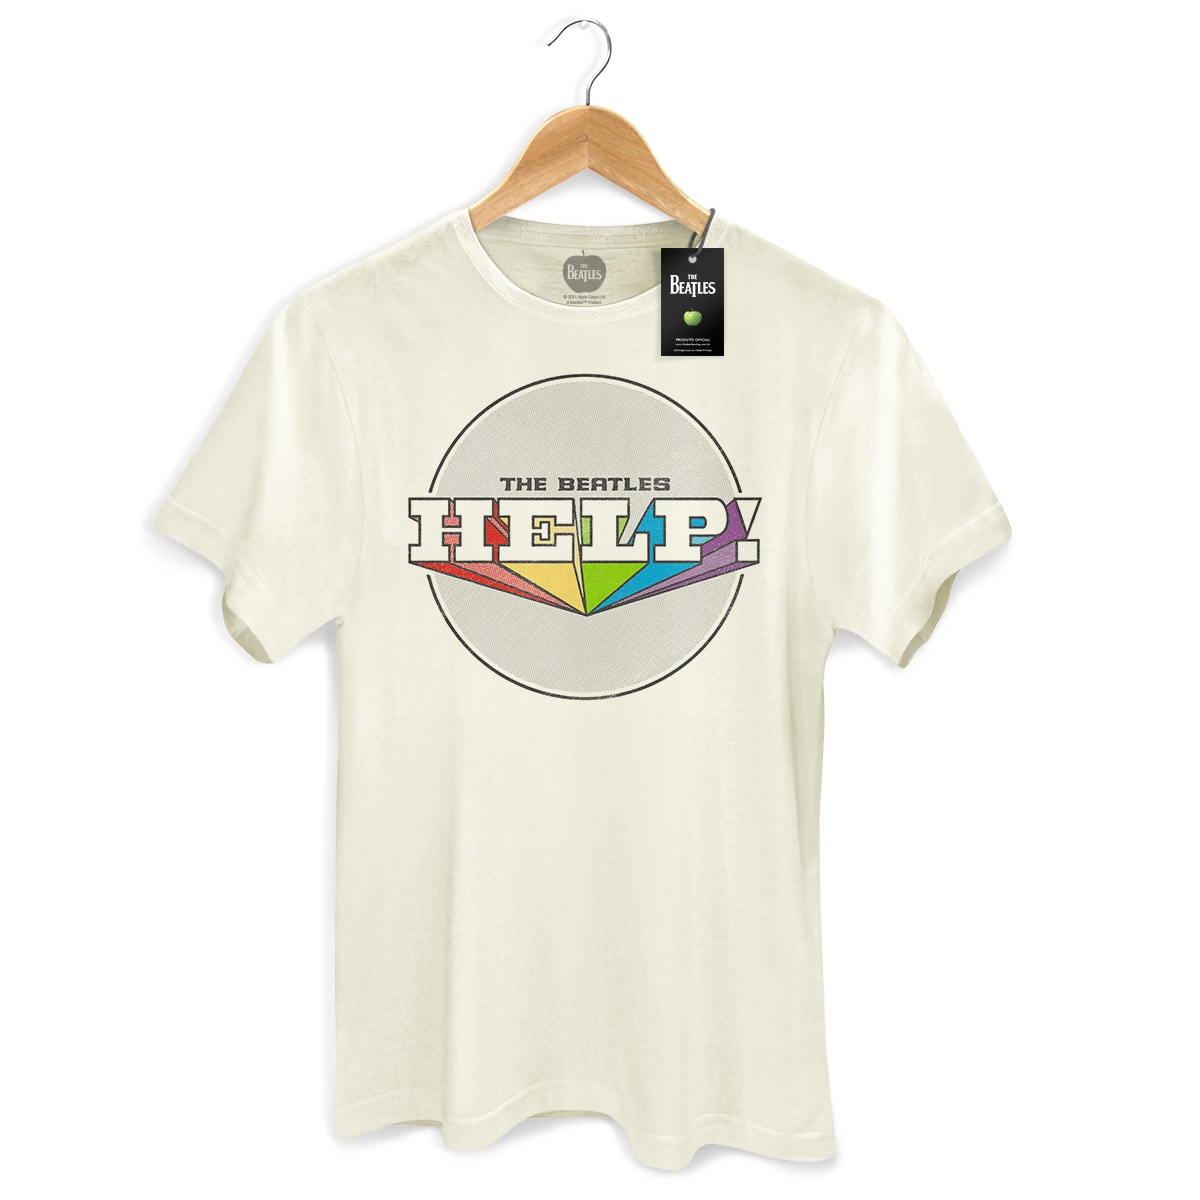 Camiseta Unissex The Beatles Help! 2